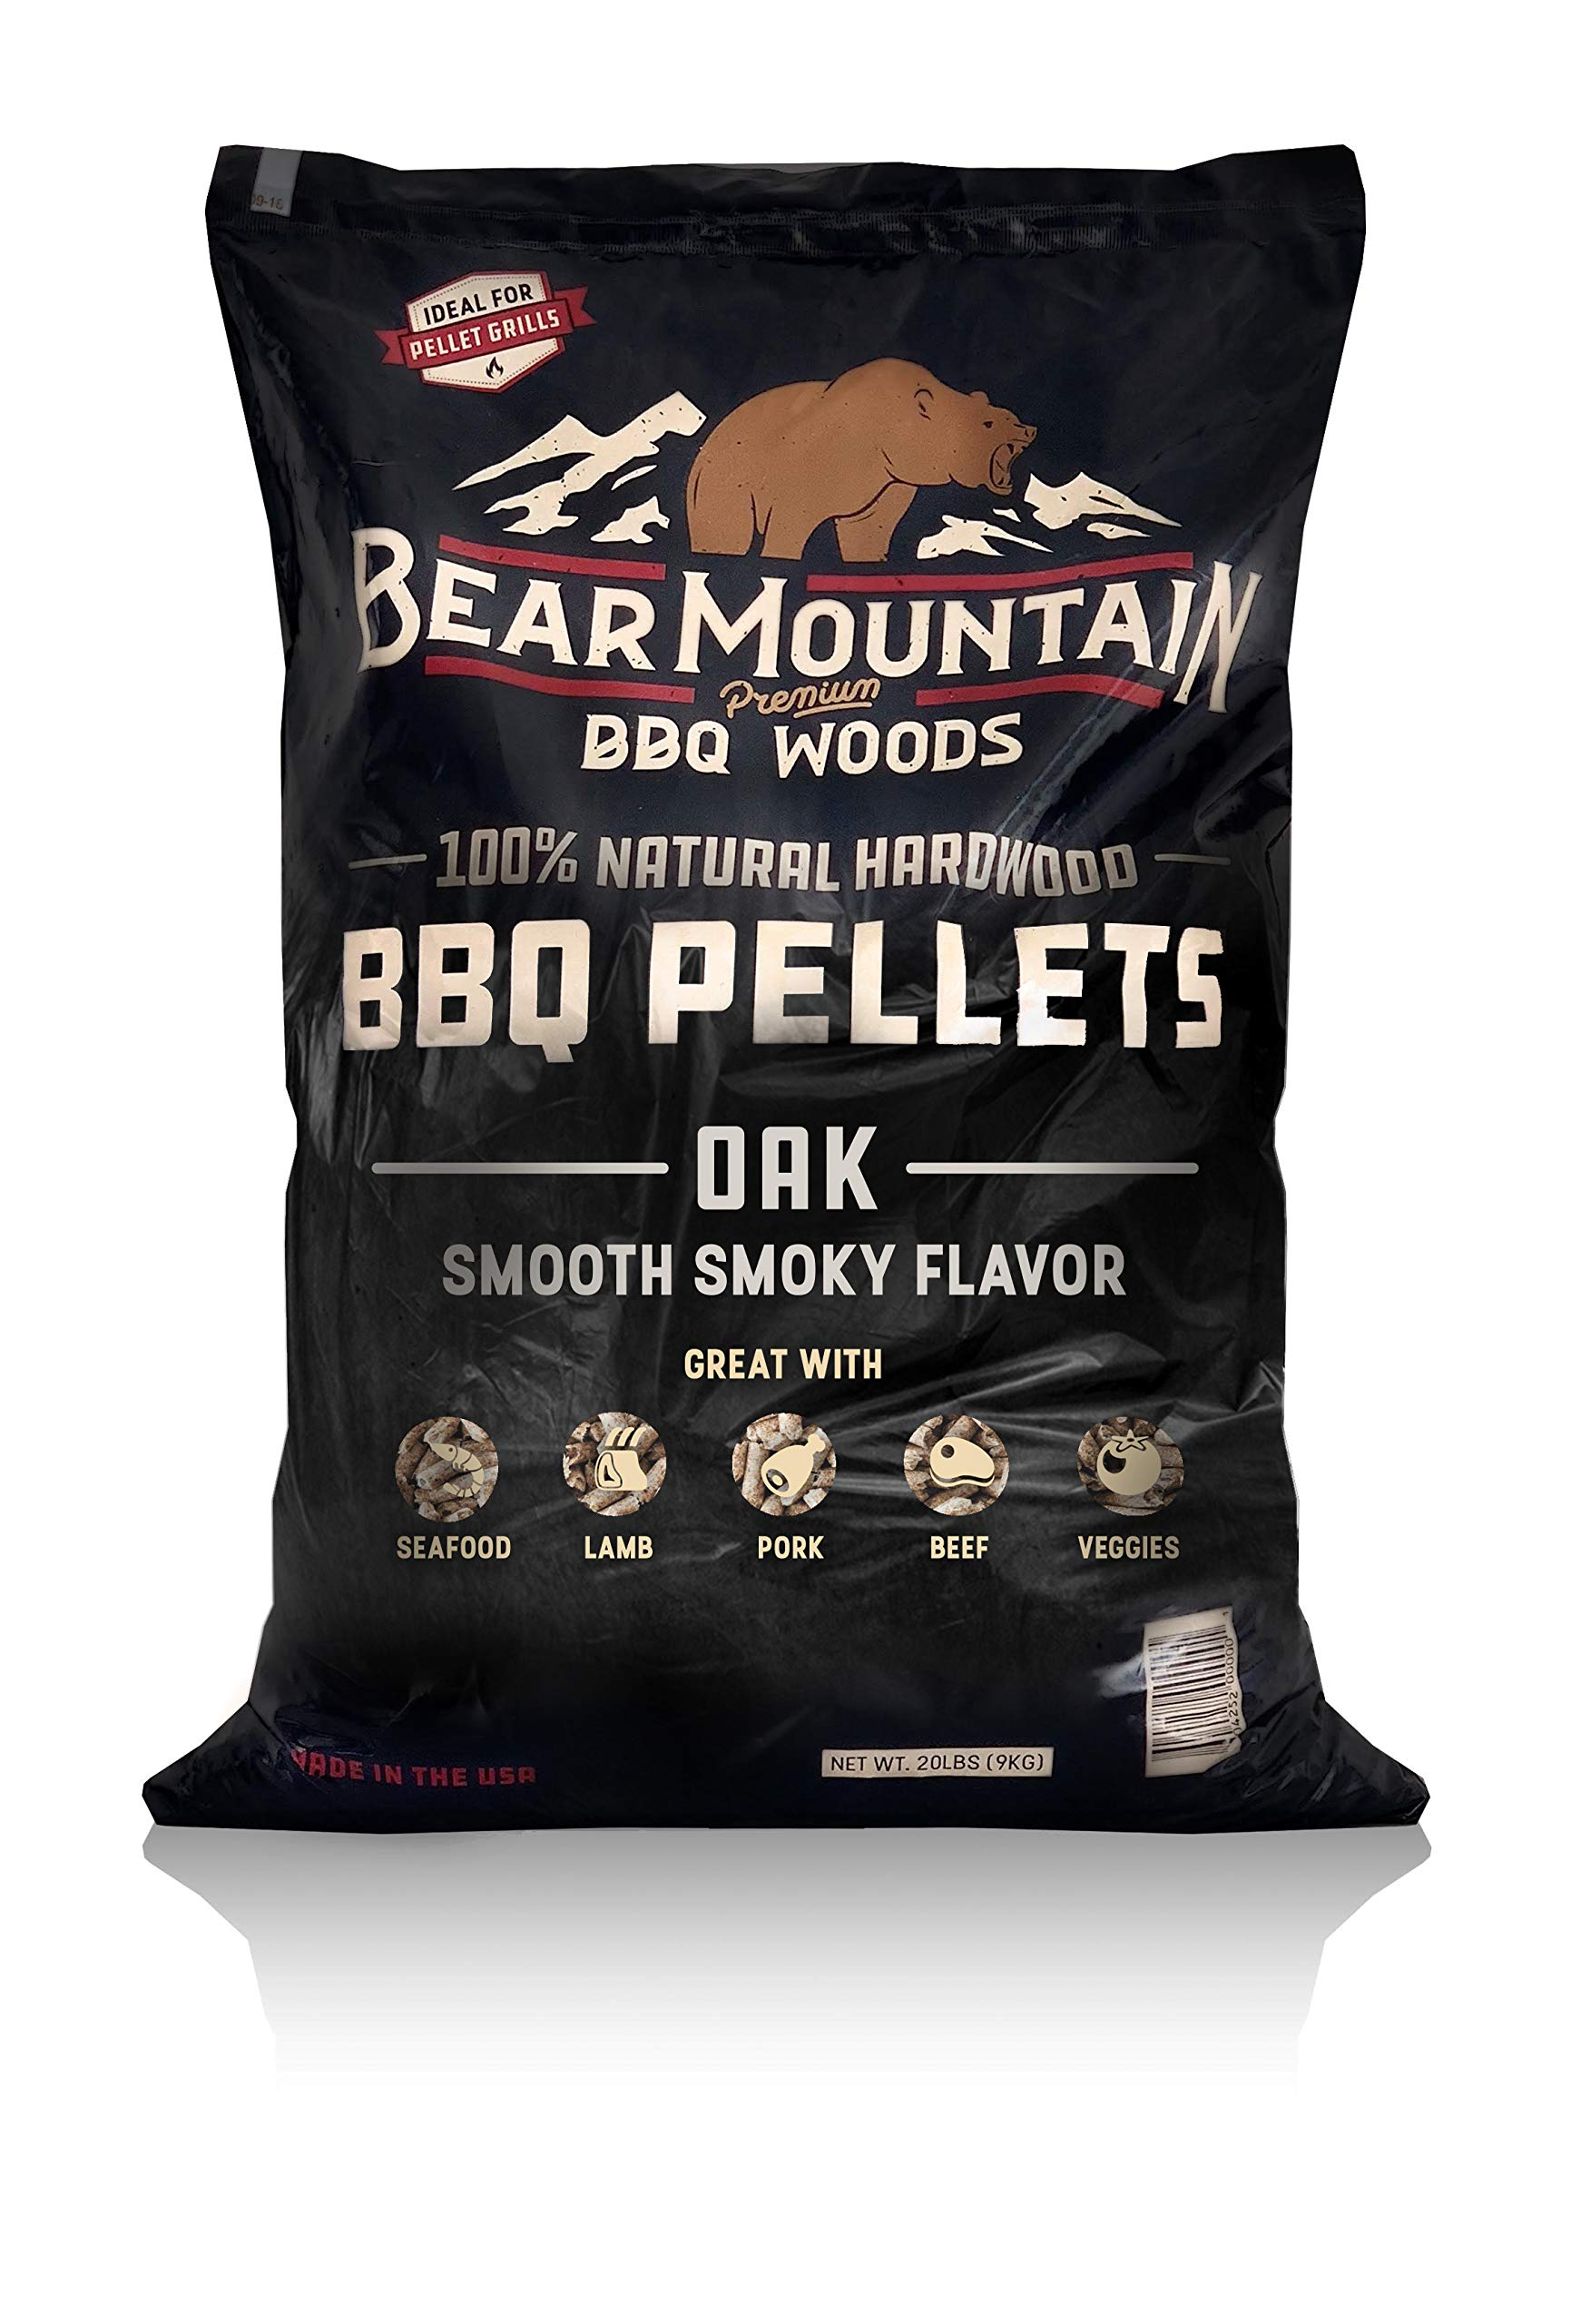 Bear Mountain BBQ 100% All-Natural Hardwood Pellets - Oak (20 lb. Bag) Perfect for Pellet Smokers, or Any Outdoor Grill | Rich, Smoky Wood-Fired Flavor by Bear Mountain BBQ